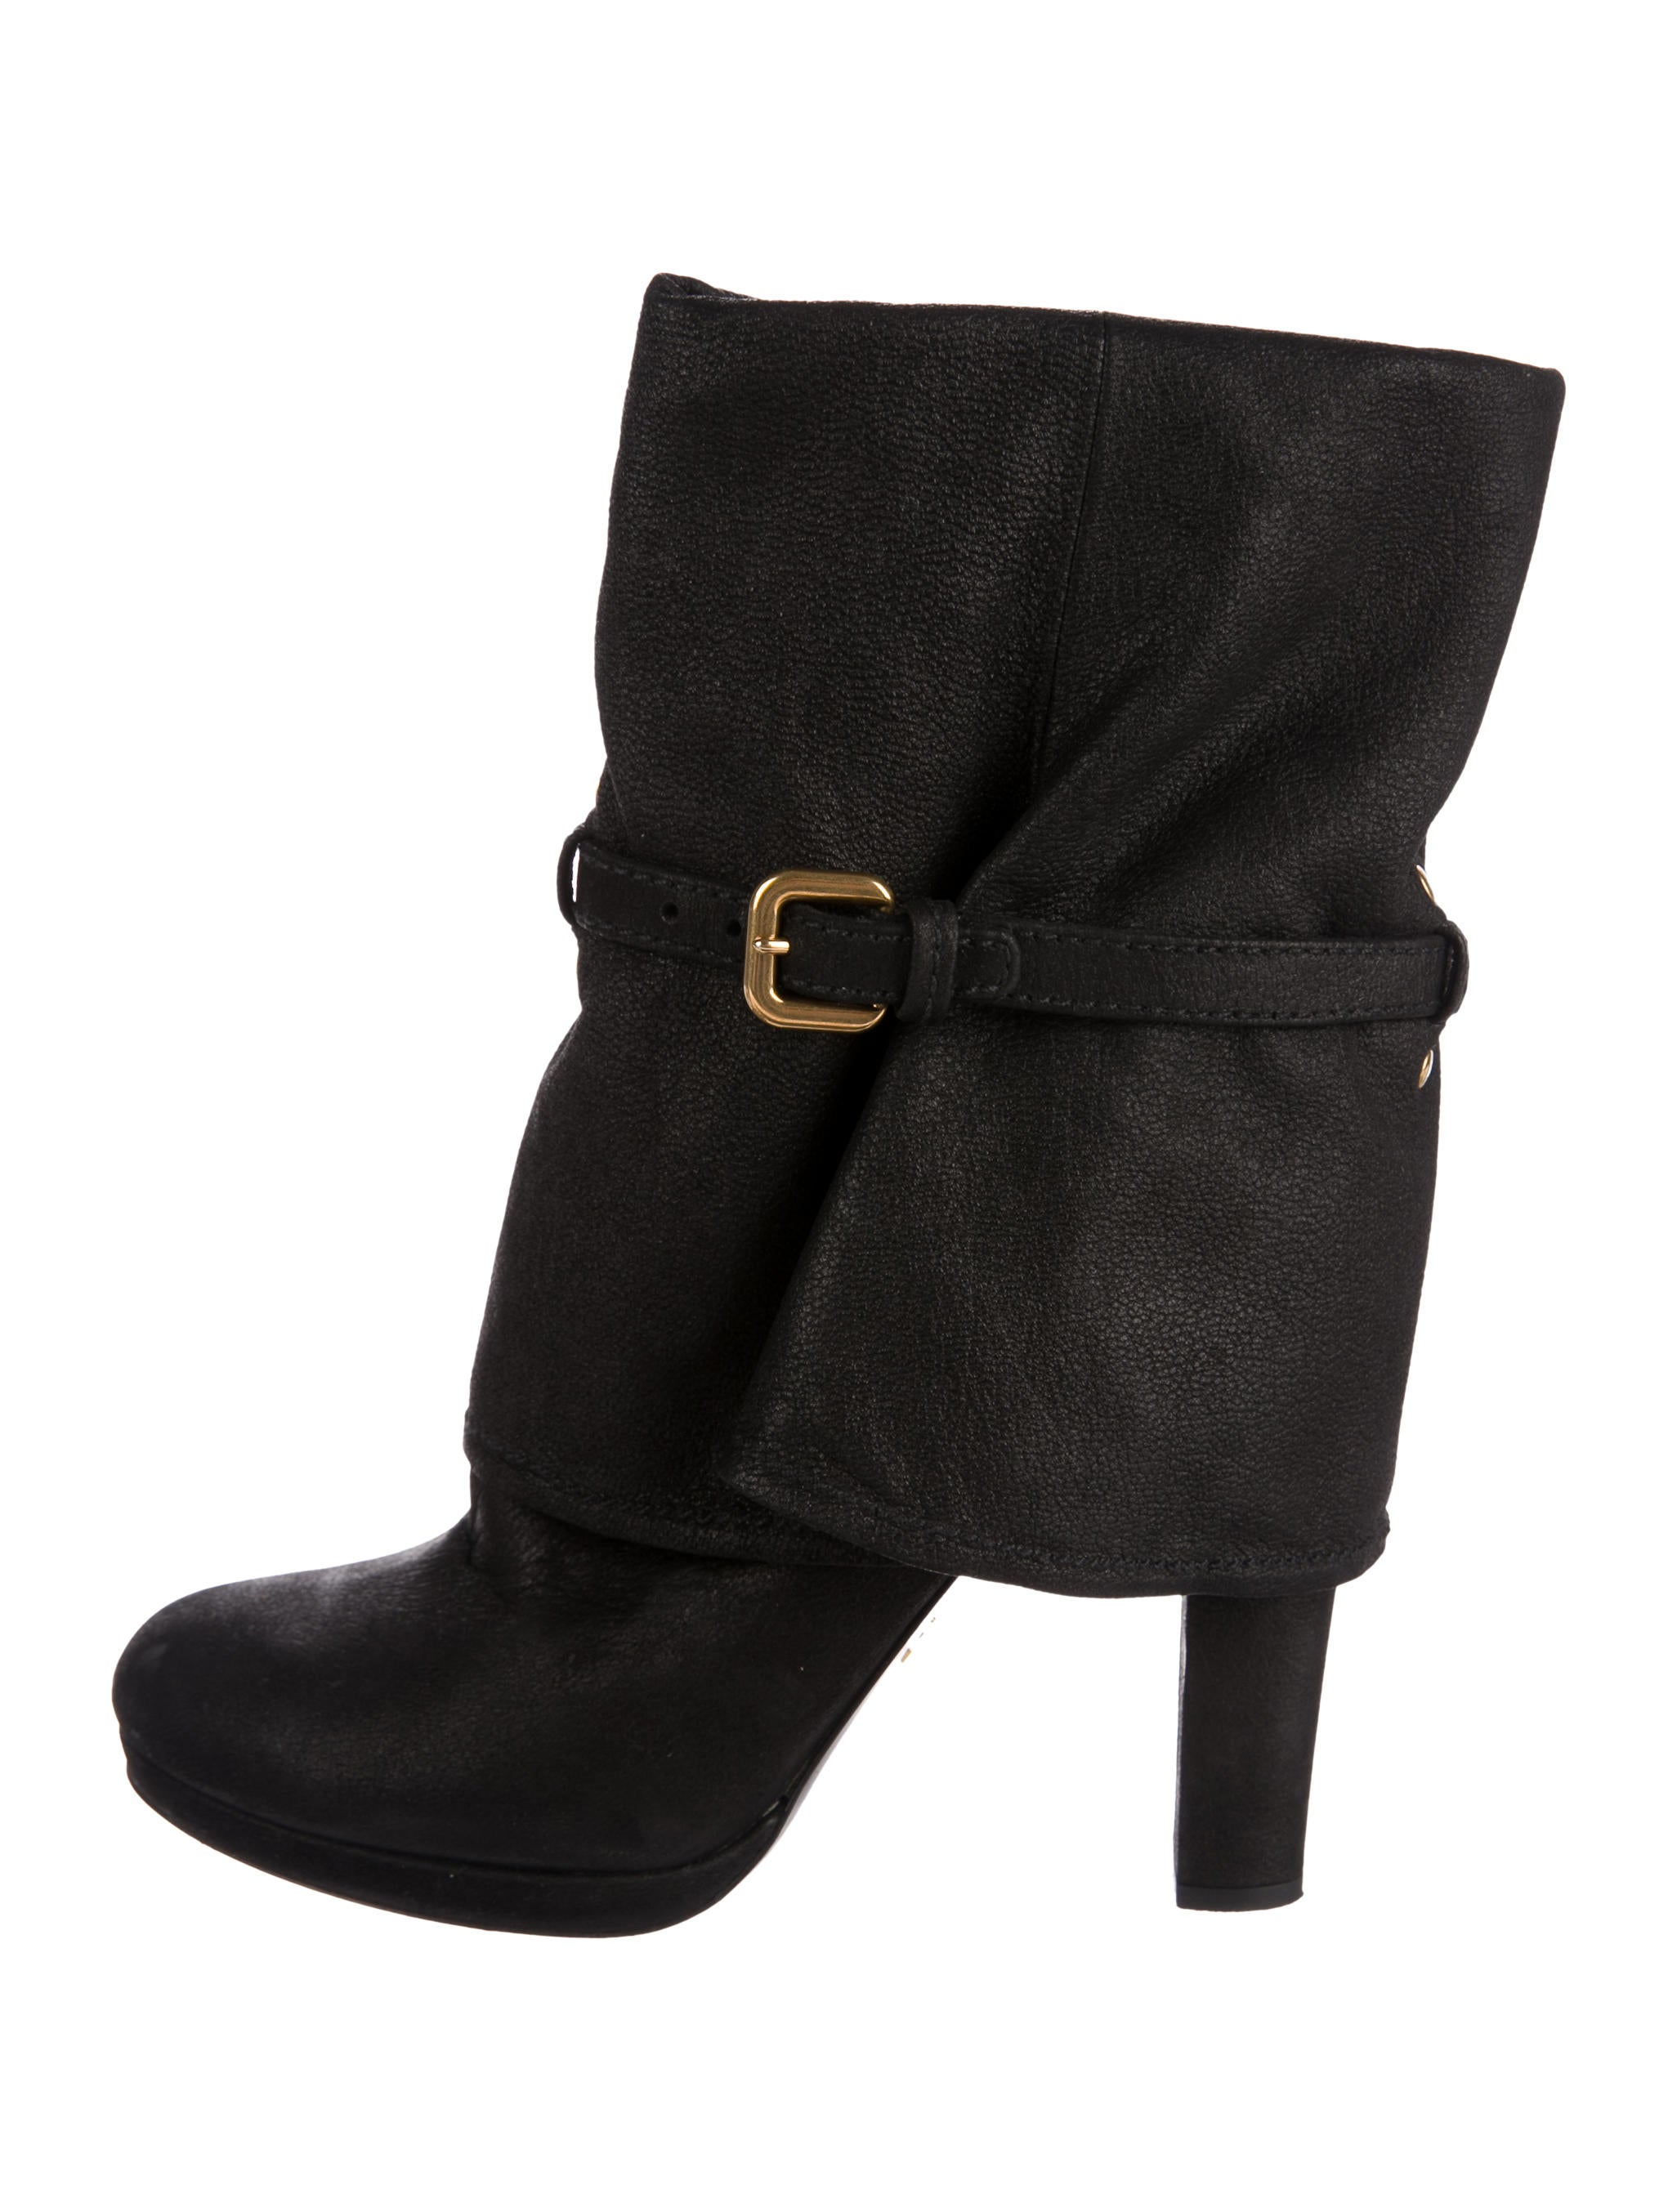 Prada High-Heel Foldover Boots cheap low cost sale great deals discount view cheap new Inexpensive sale online M5aqJgH